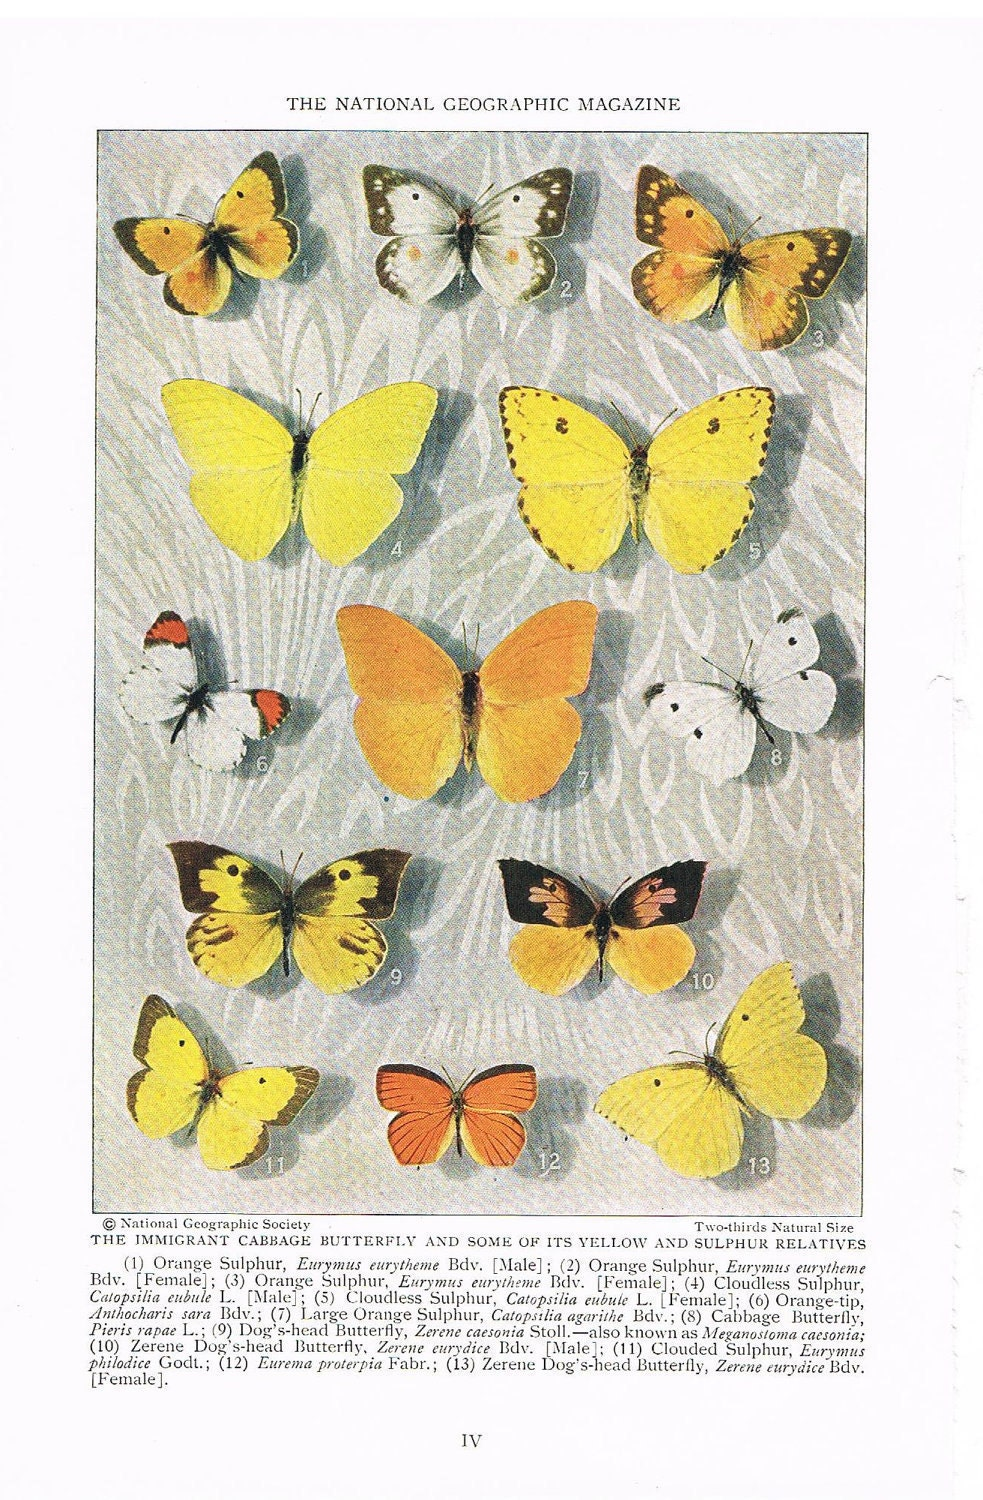 Antique 1927 Butterfly Print, Paper Ephemera, Species Identification Full Page Color Illustration, Home Decor, Art for Framing (IV) - YesterdaysSilhouette